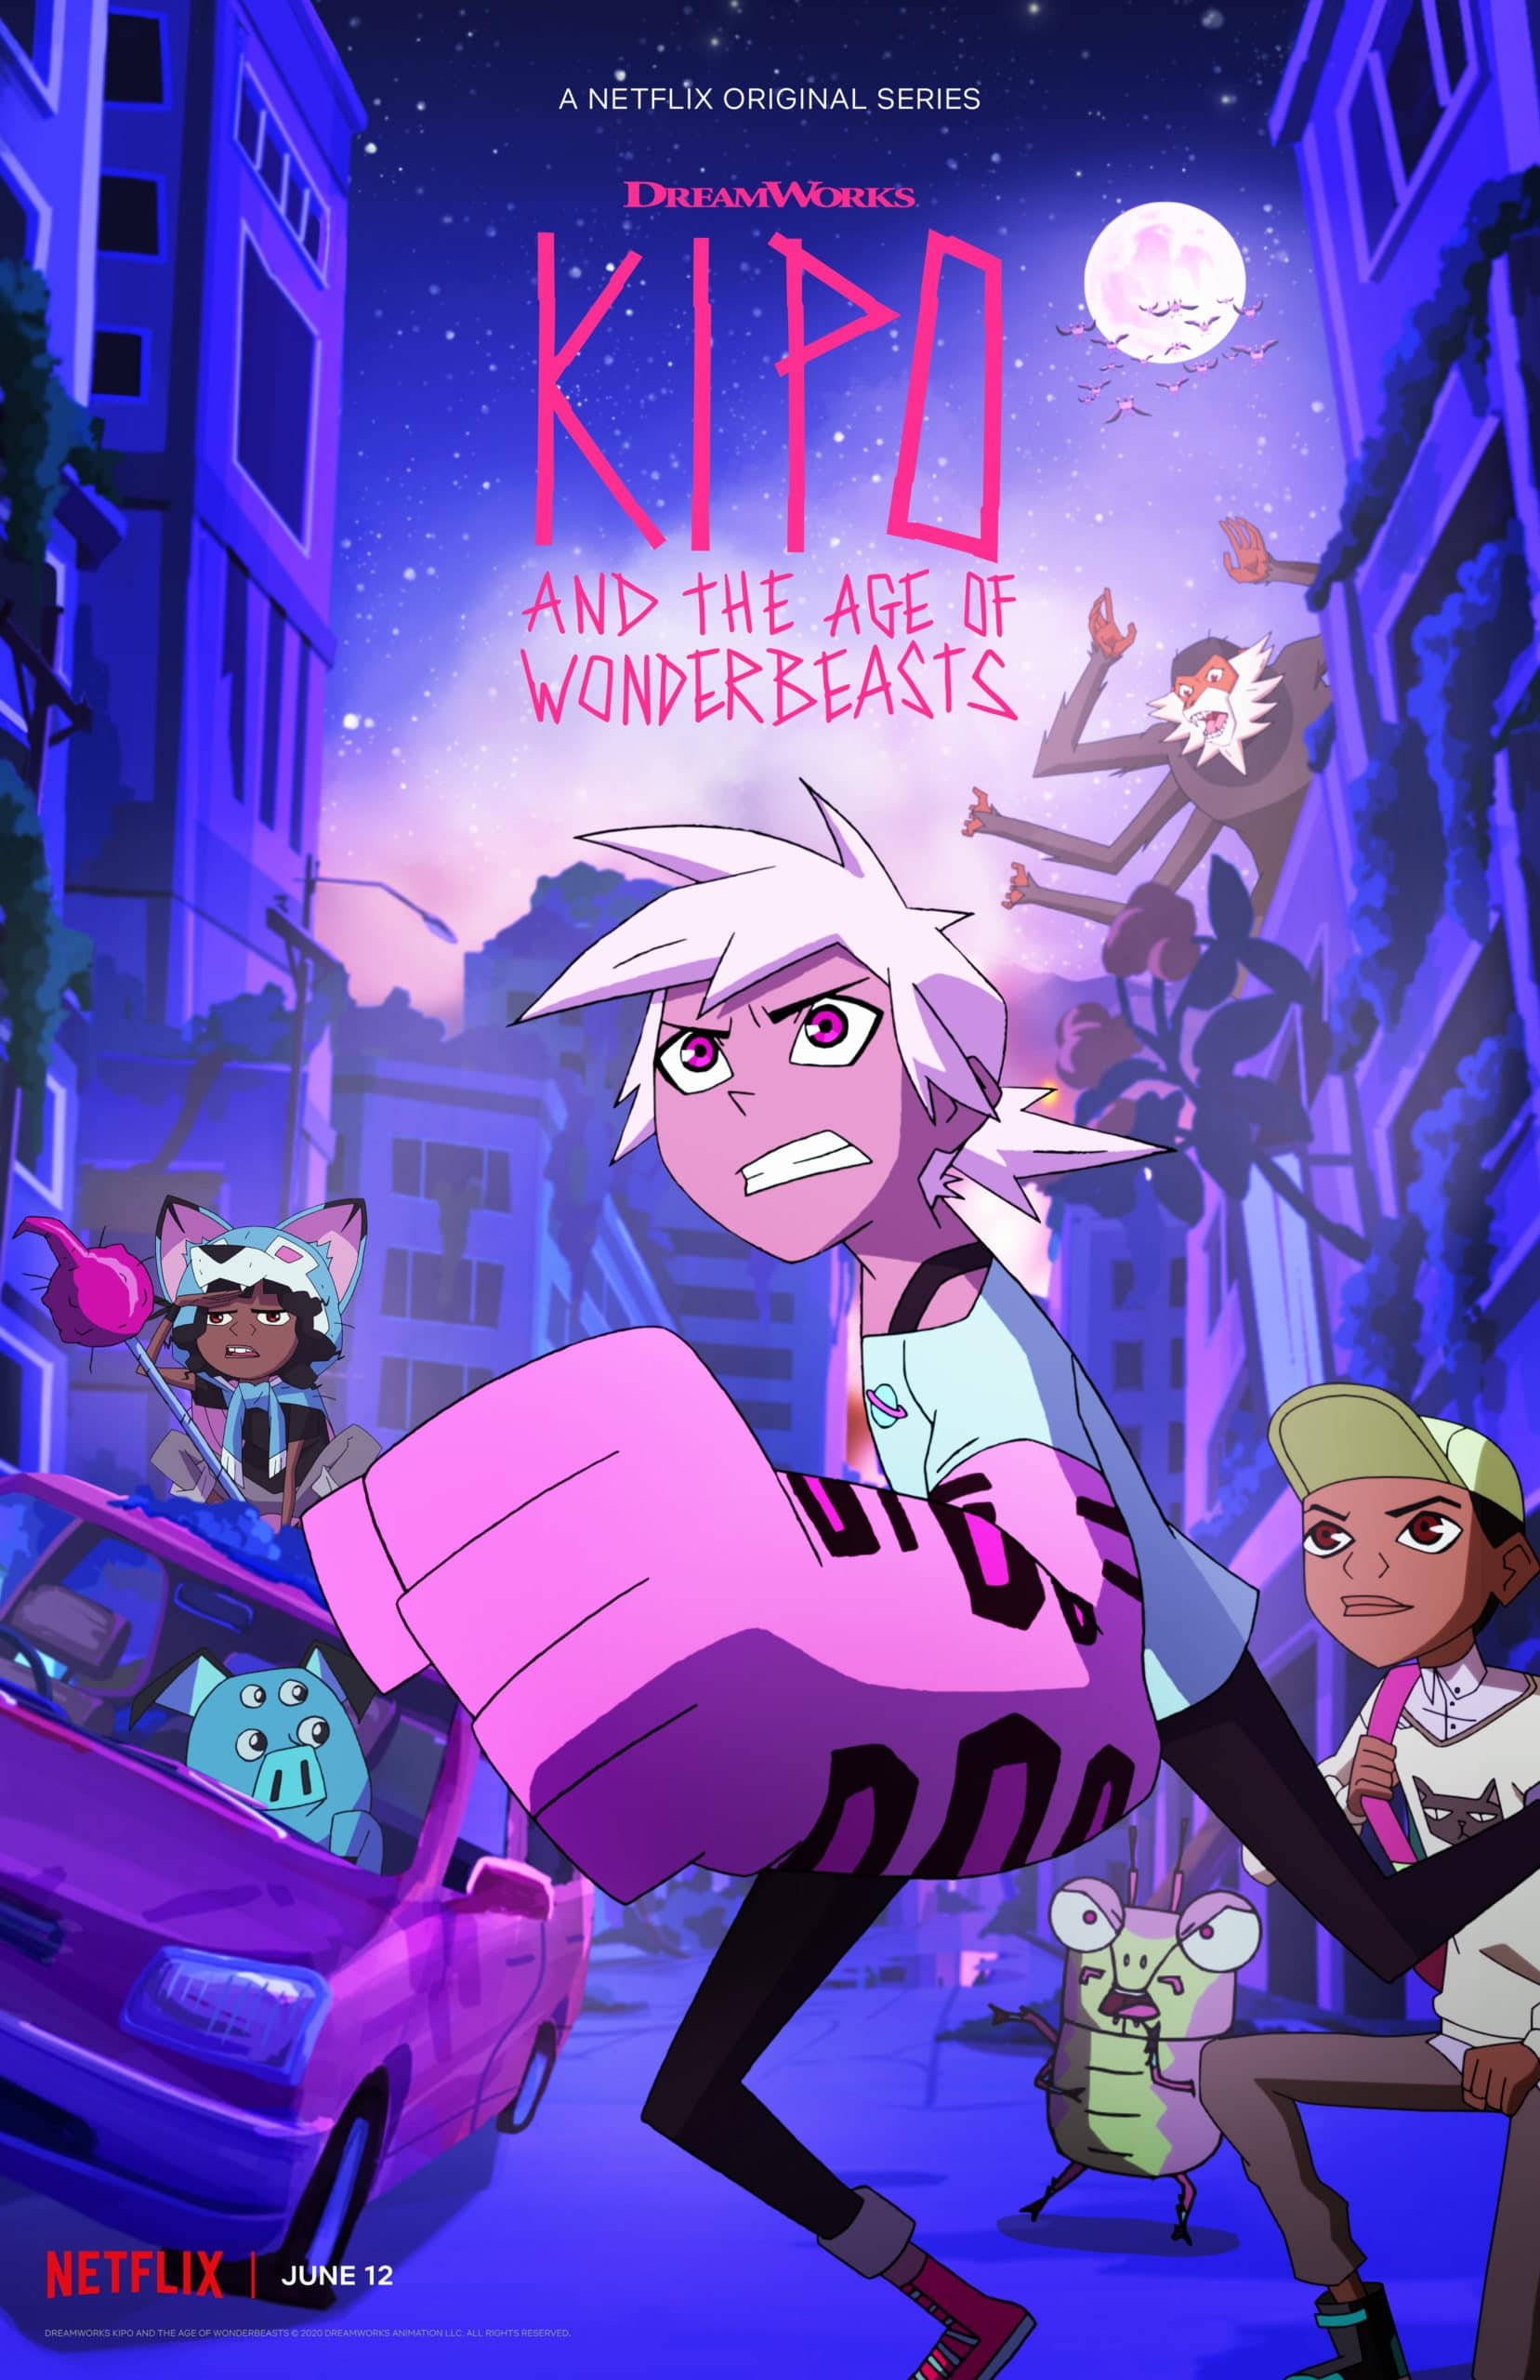 Kipo S2 Key Art. DreamWorks Kipo and The Age of Wonderbeasts will return to Netflix June 12, for a second season filled with adventures through the whimsical, weird post-apocalyptic world of Las Vistas.